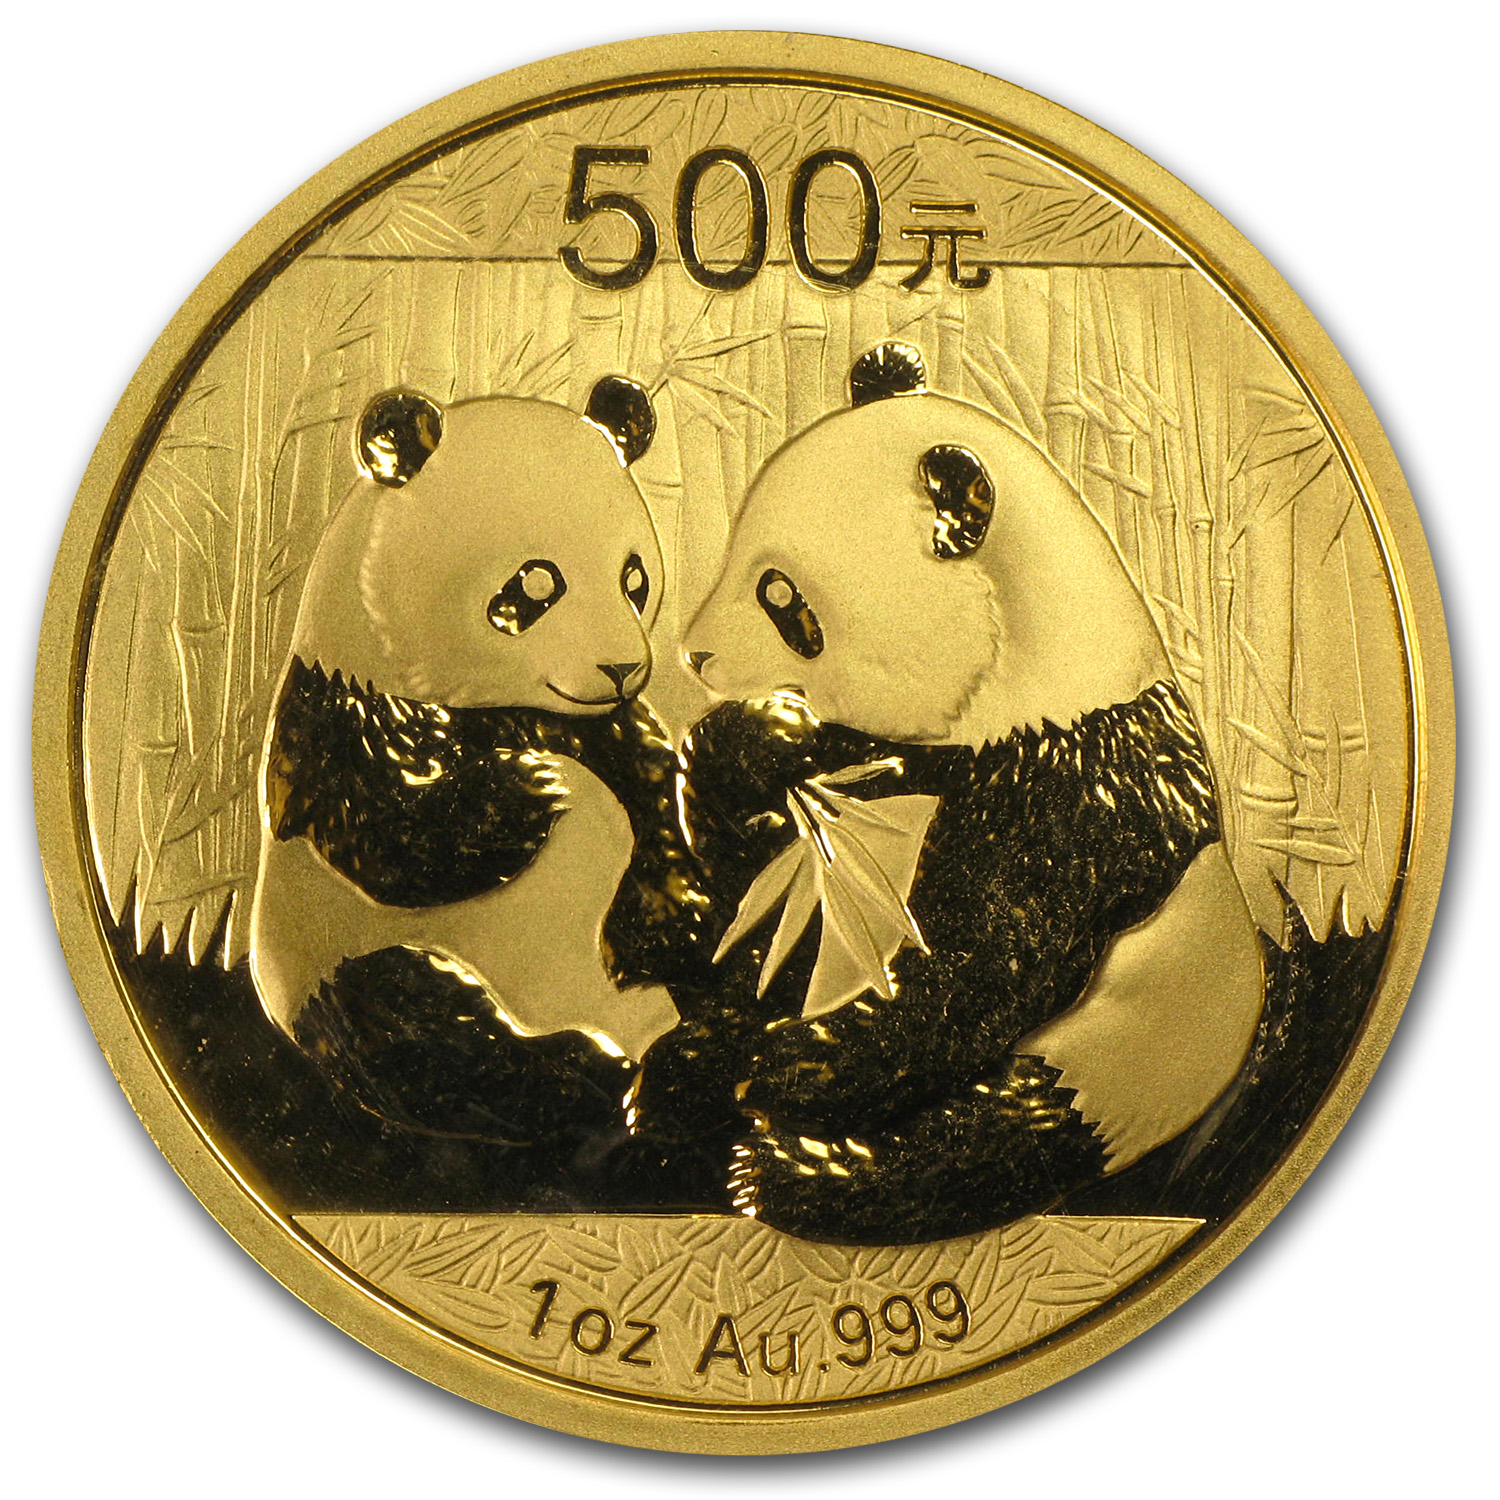 2009 China 1 oz Gold Panda BU (Sealed)